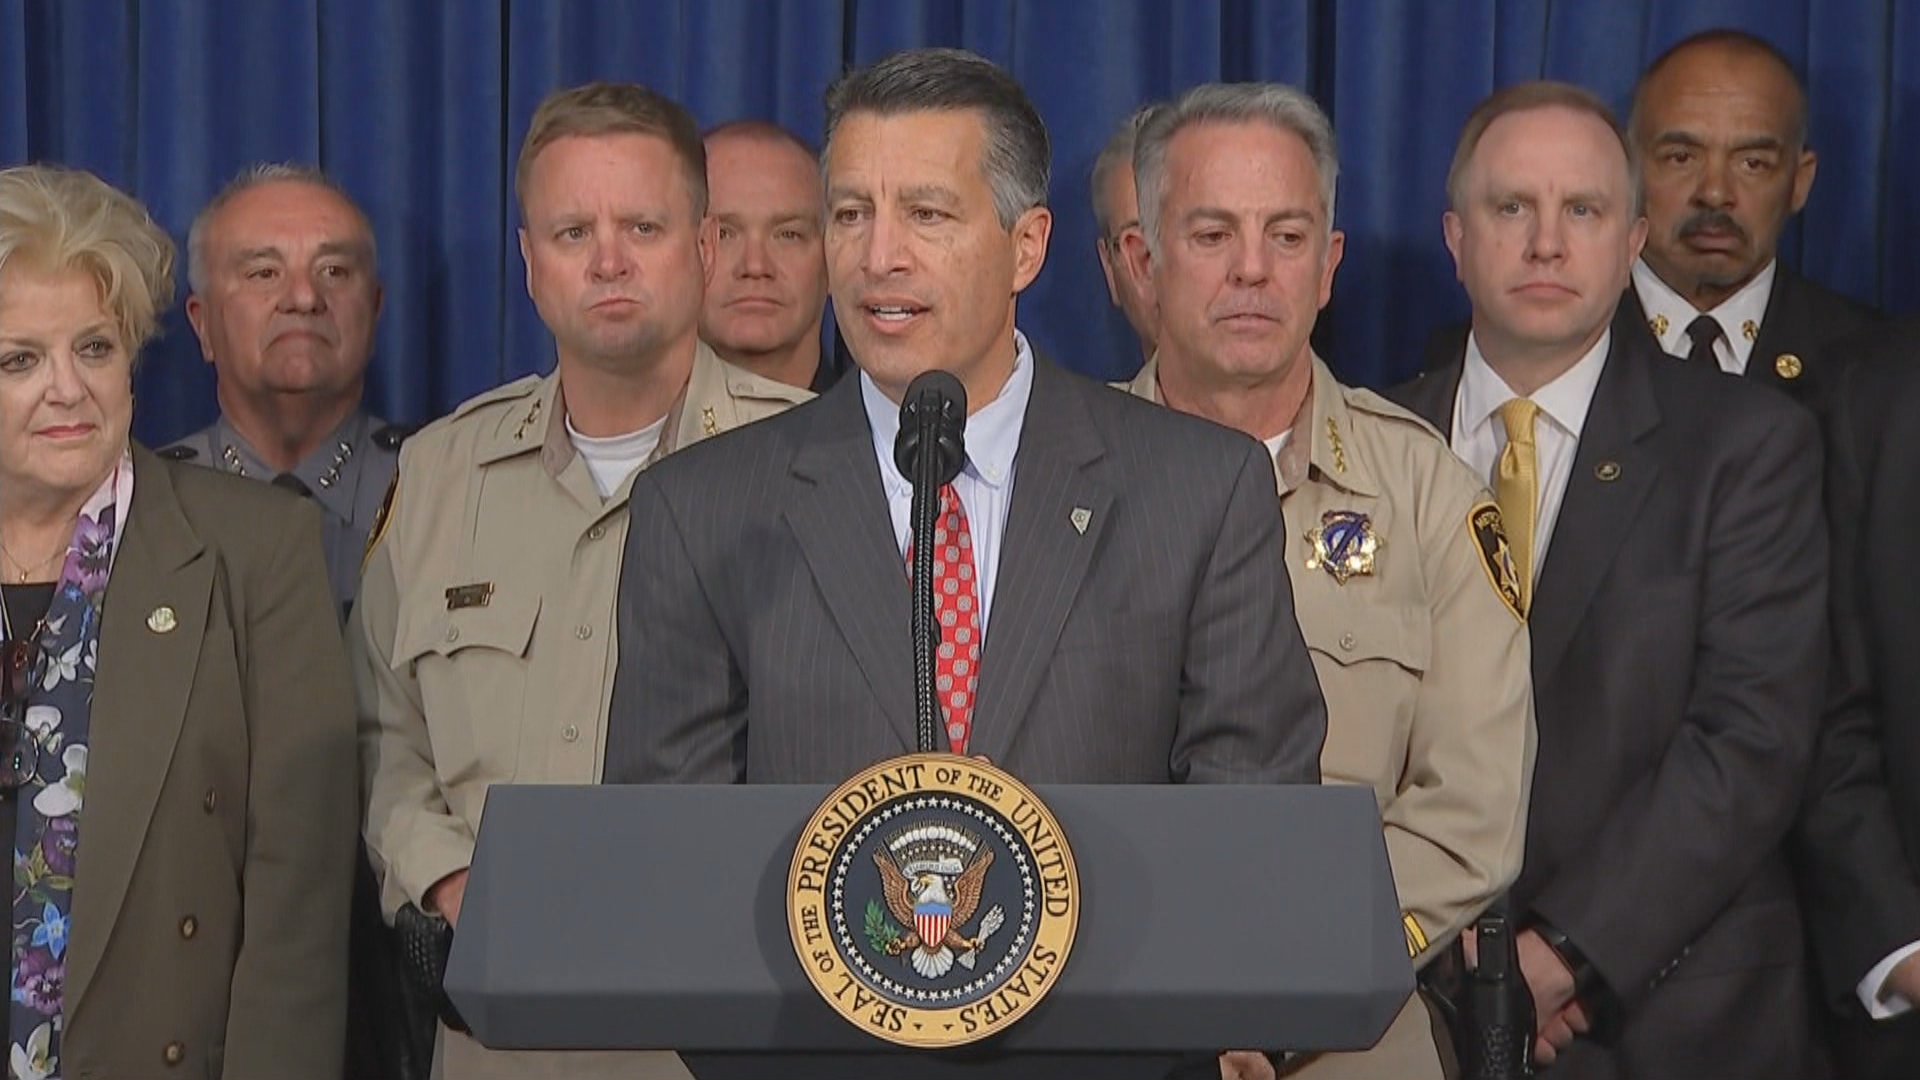 Nevada Gov. Brian Sandoval speaks Wednesday, Oct. 4, 2017, at Las Vegas Metropolitan Police Department headquarters. (KSNV)